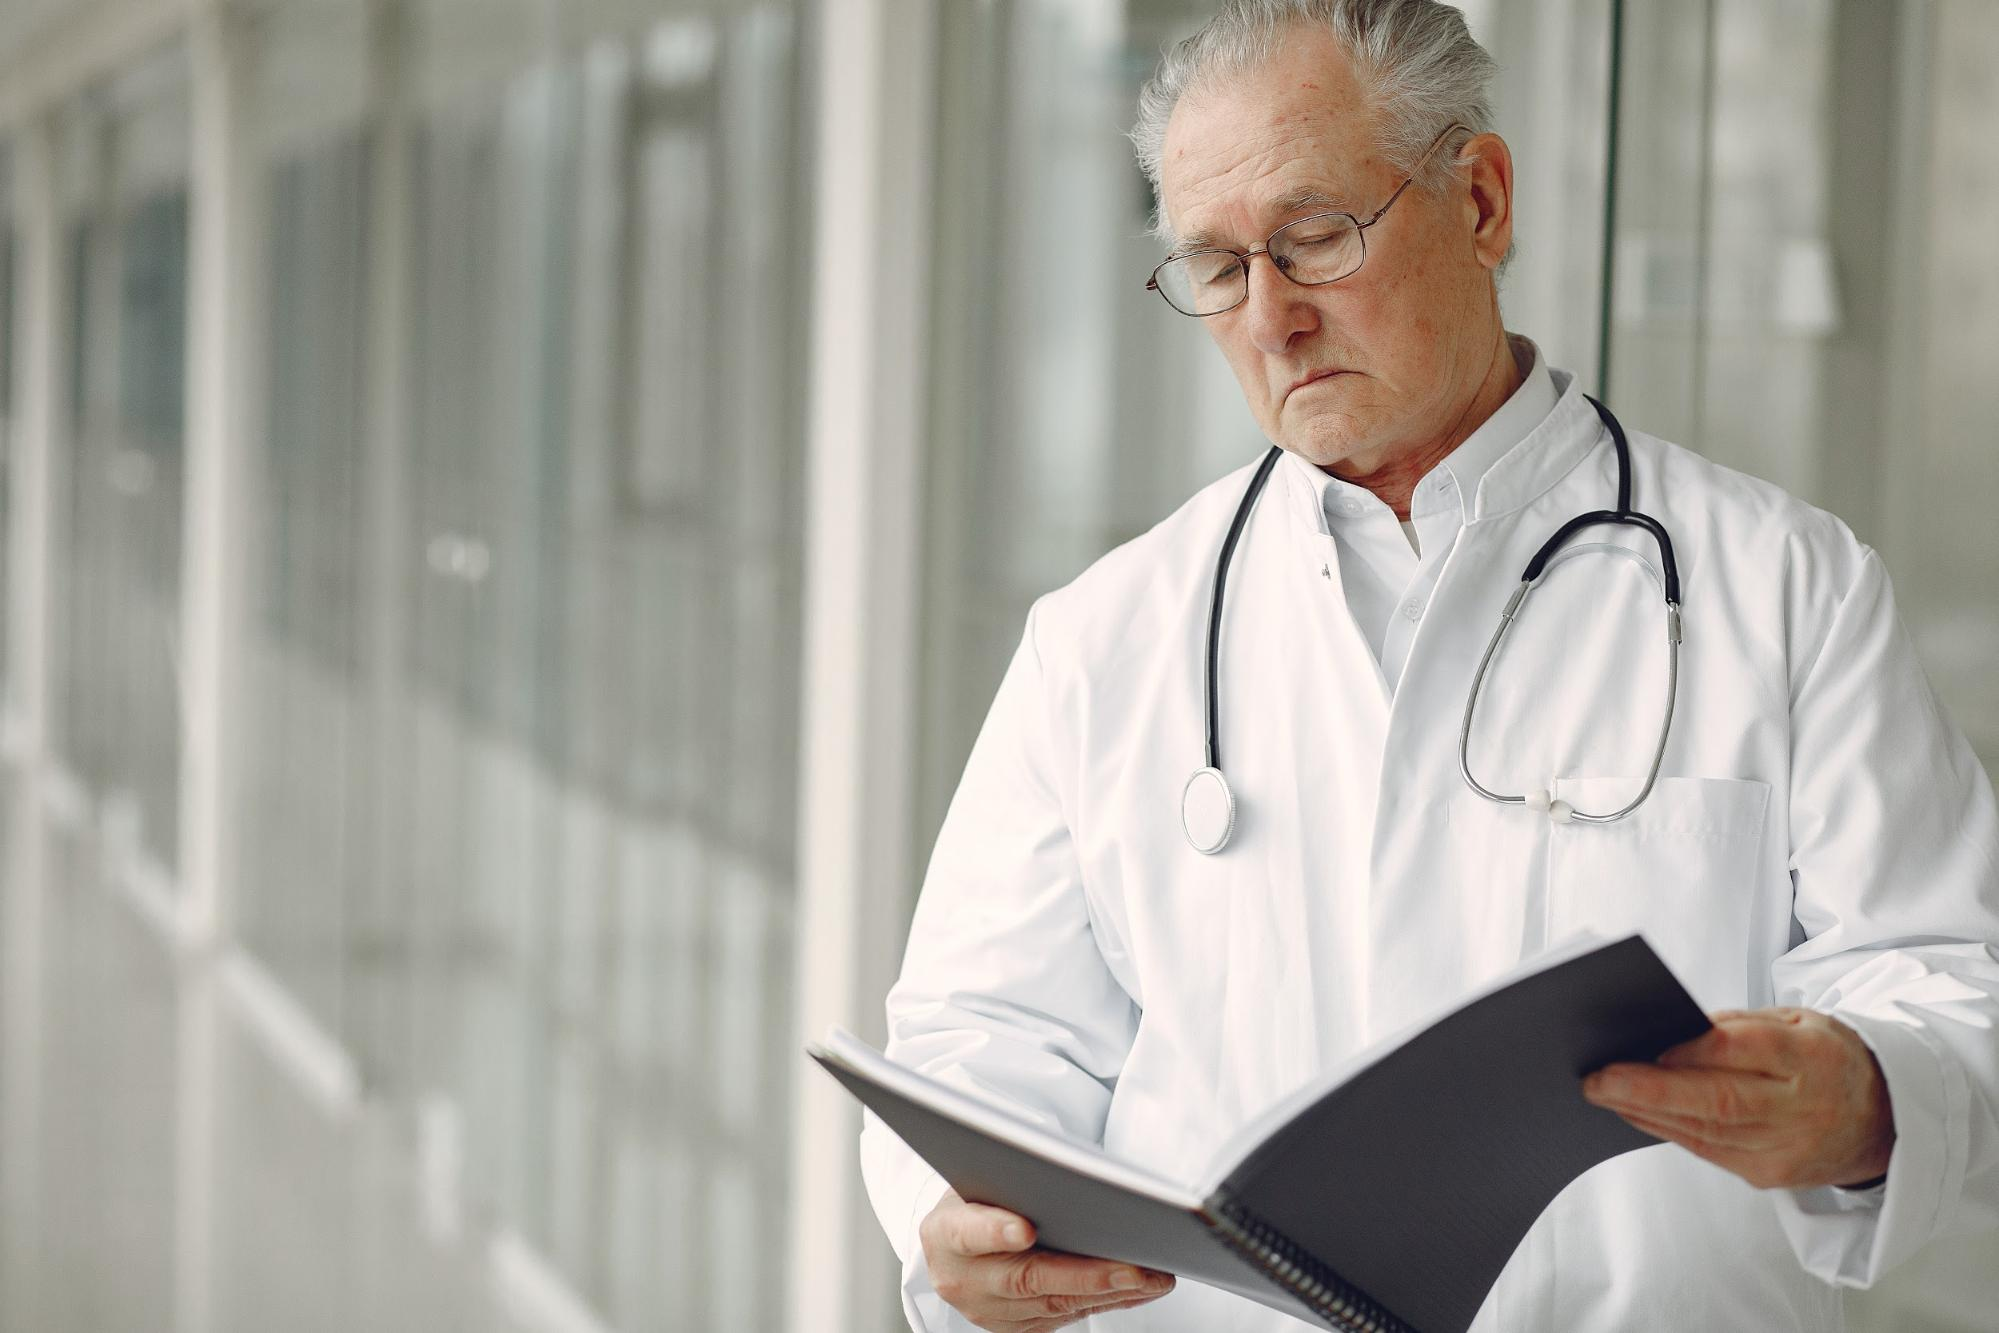 A medical provider reviews a patient's notes.